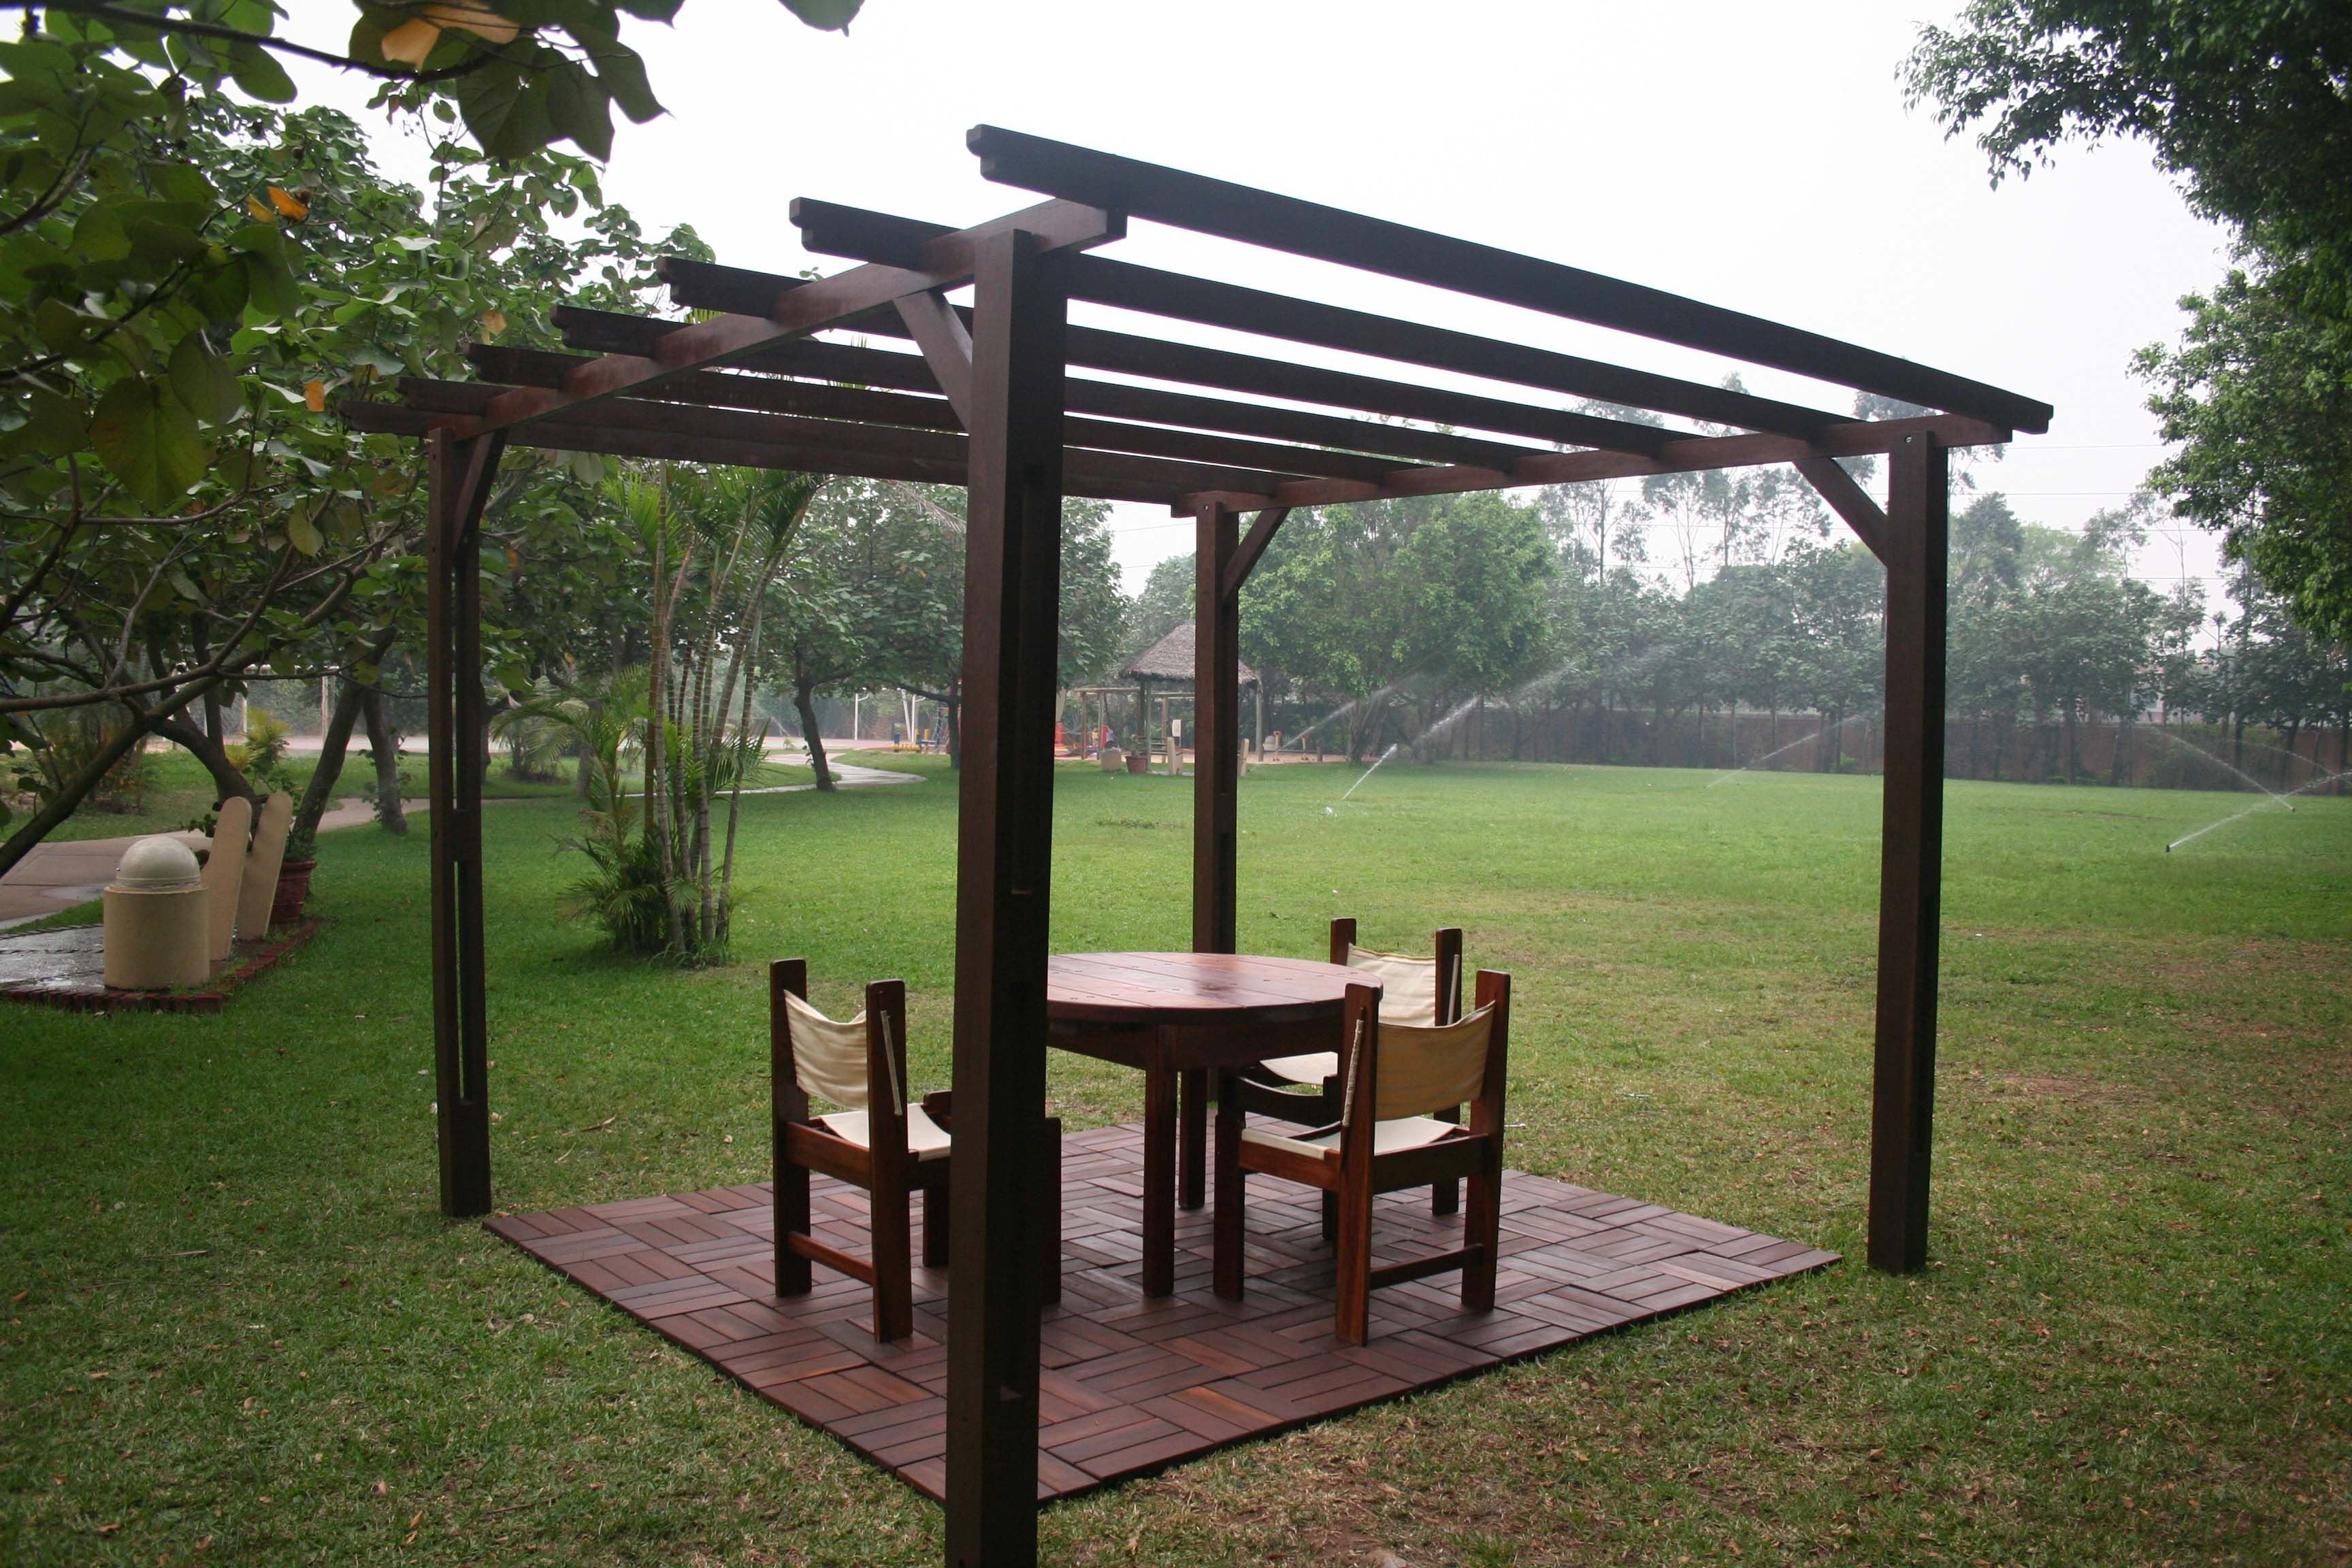 Pin by paulina perez on pergolas pinterest - Imagenes de pergolas ...